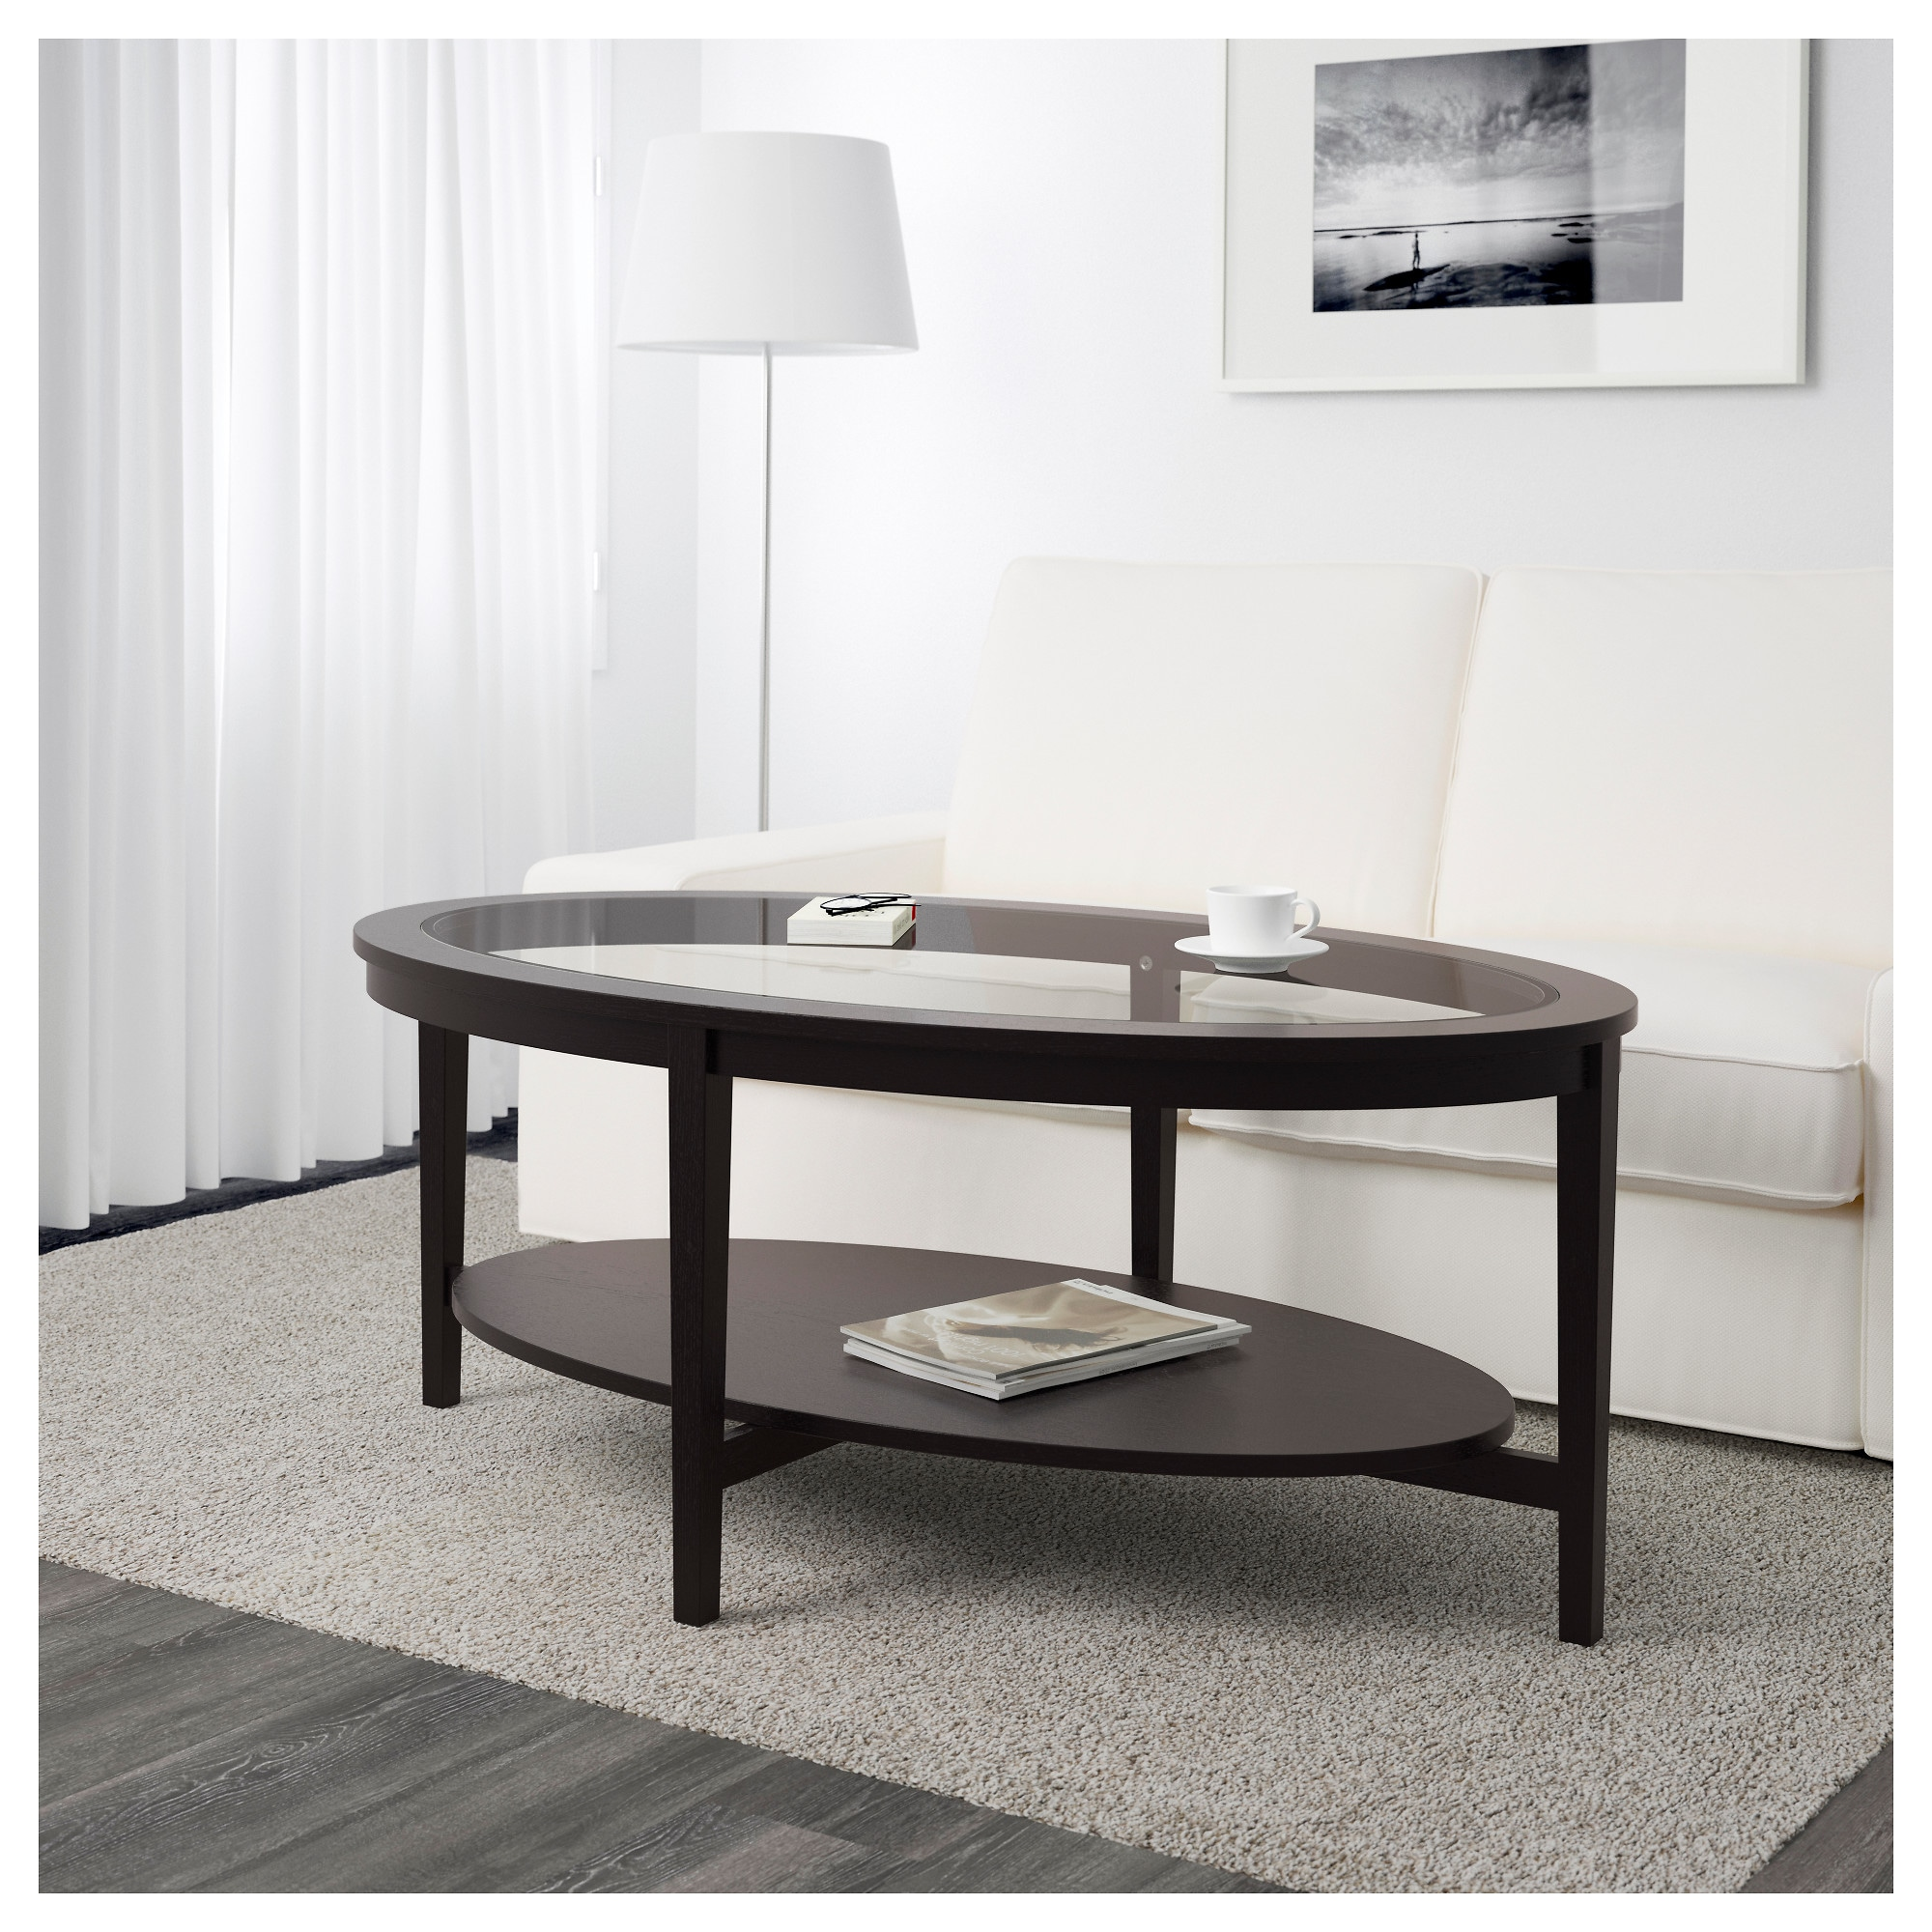 Ikea Vejmon Coffee Table